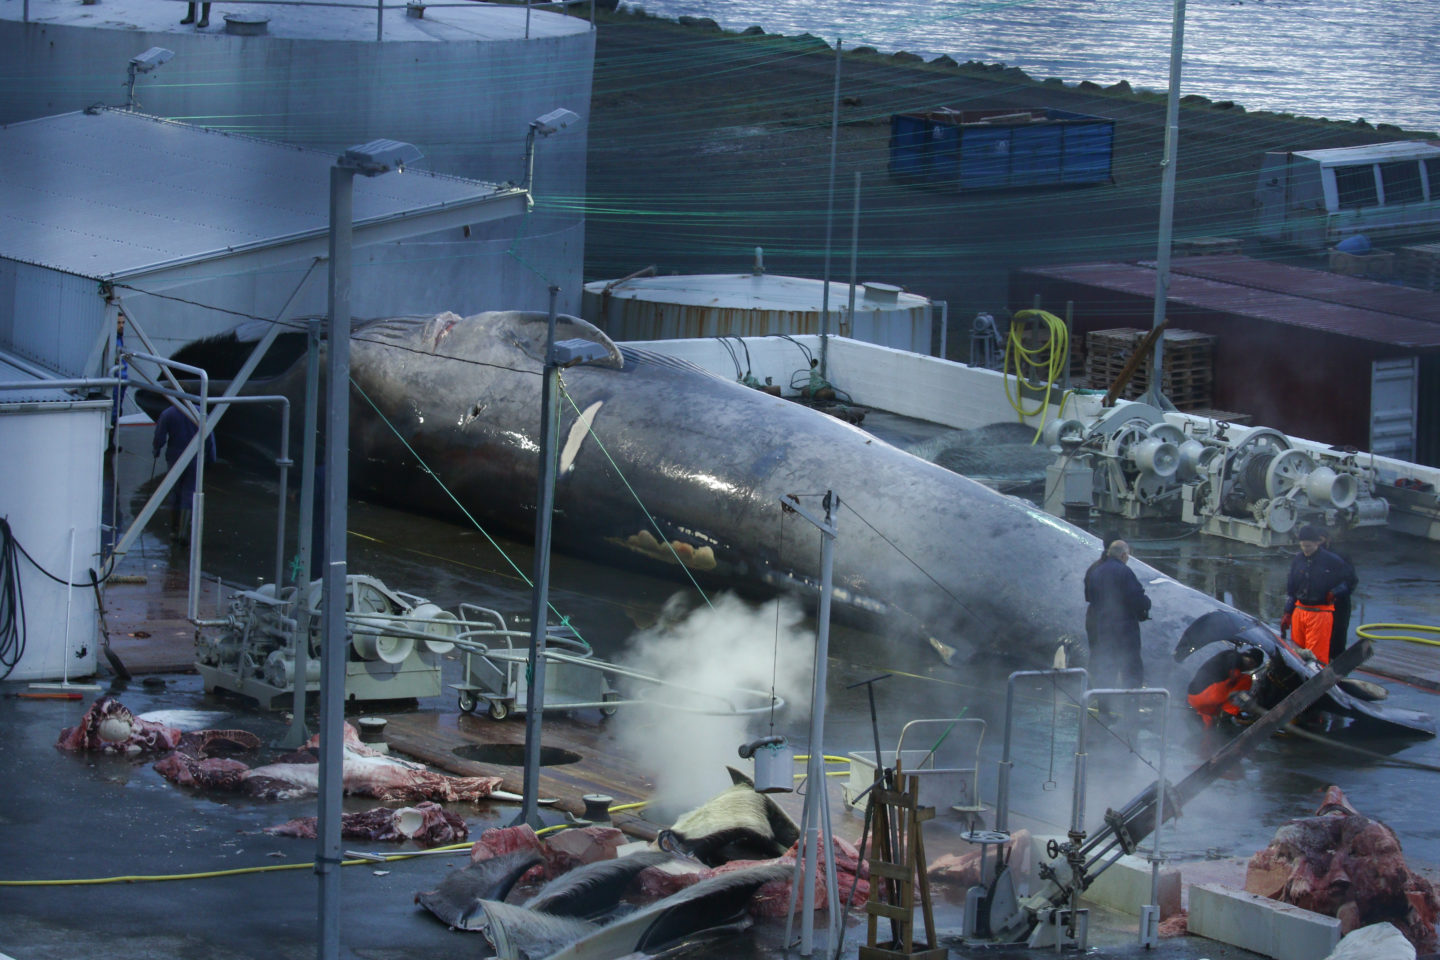 Blue whale awaiting slaughter.